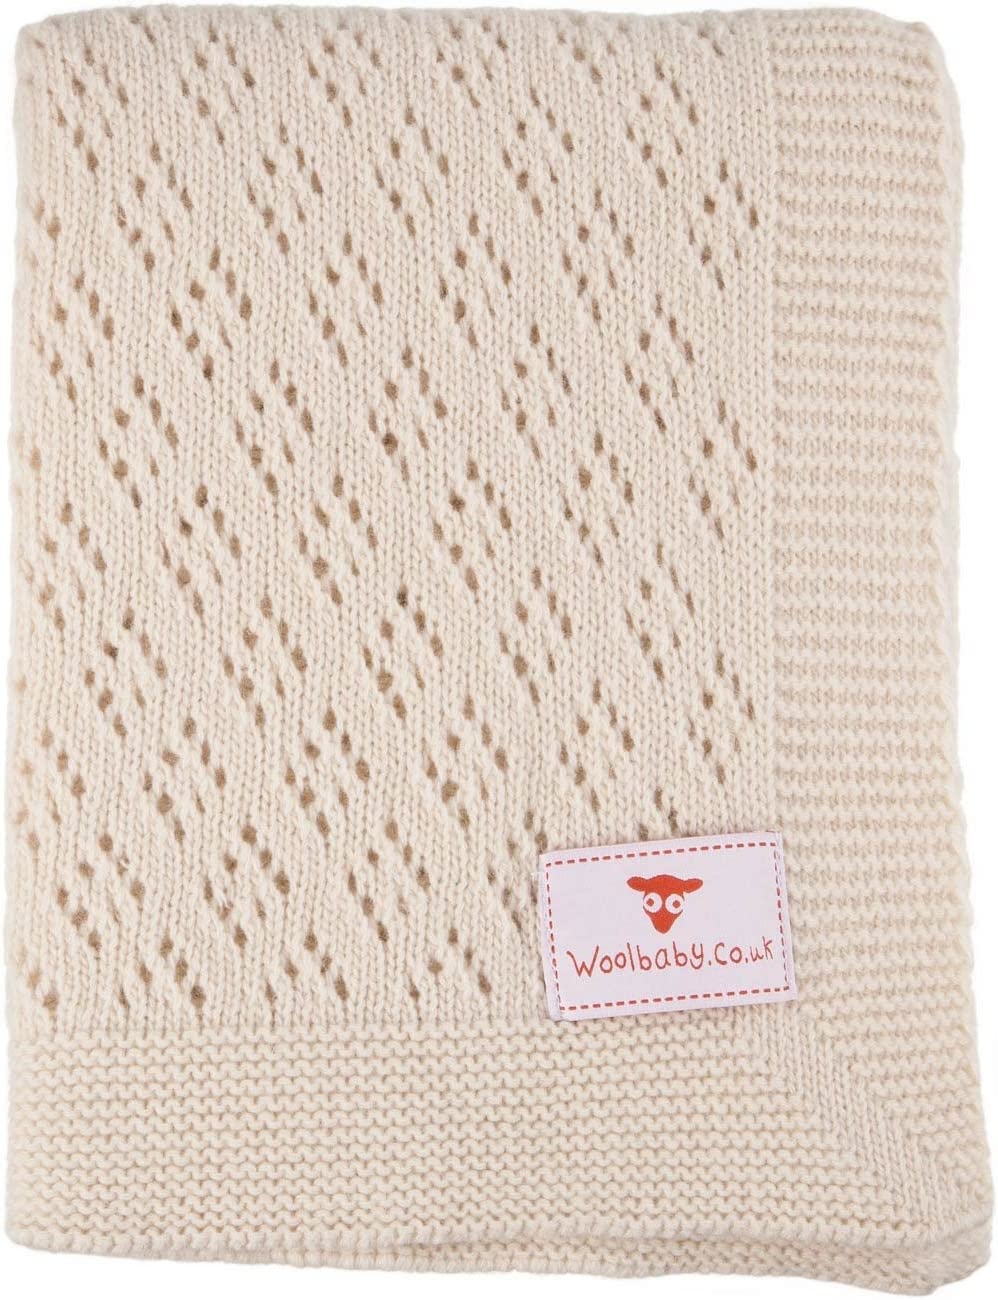 Natural Lacy Lambswool Baby Shawl Eco-Friendly /& The 100 x 75 cm Super Soft Wool Baby Blanket